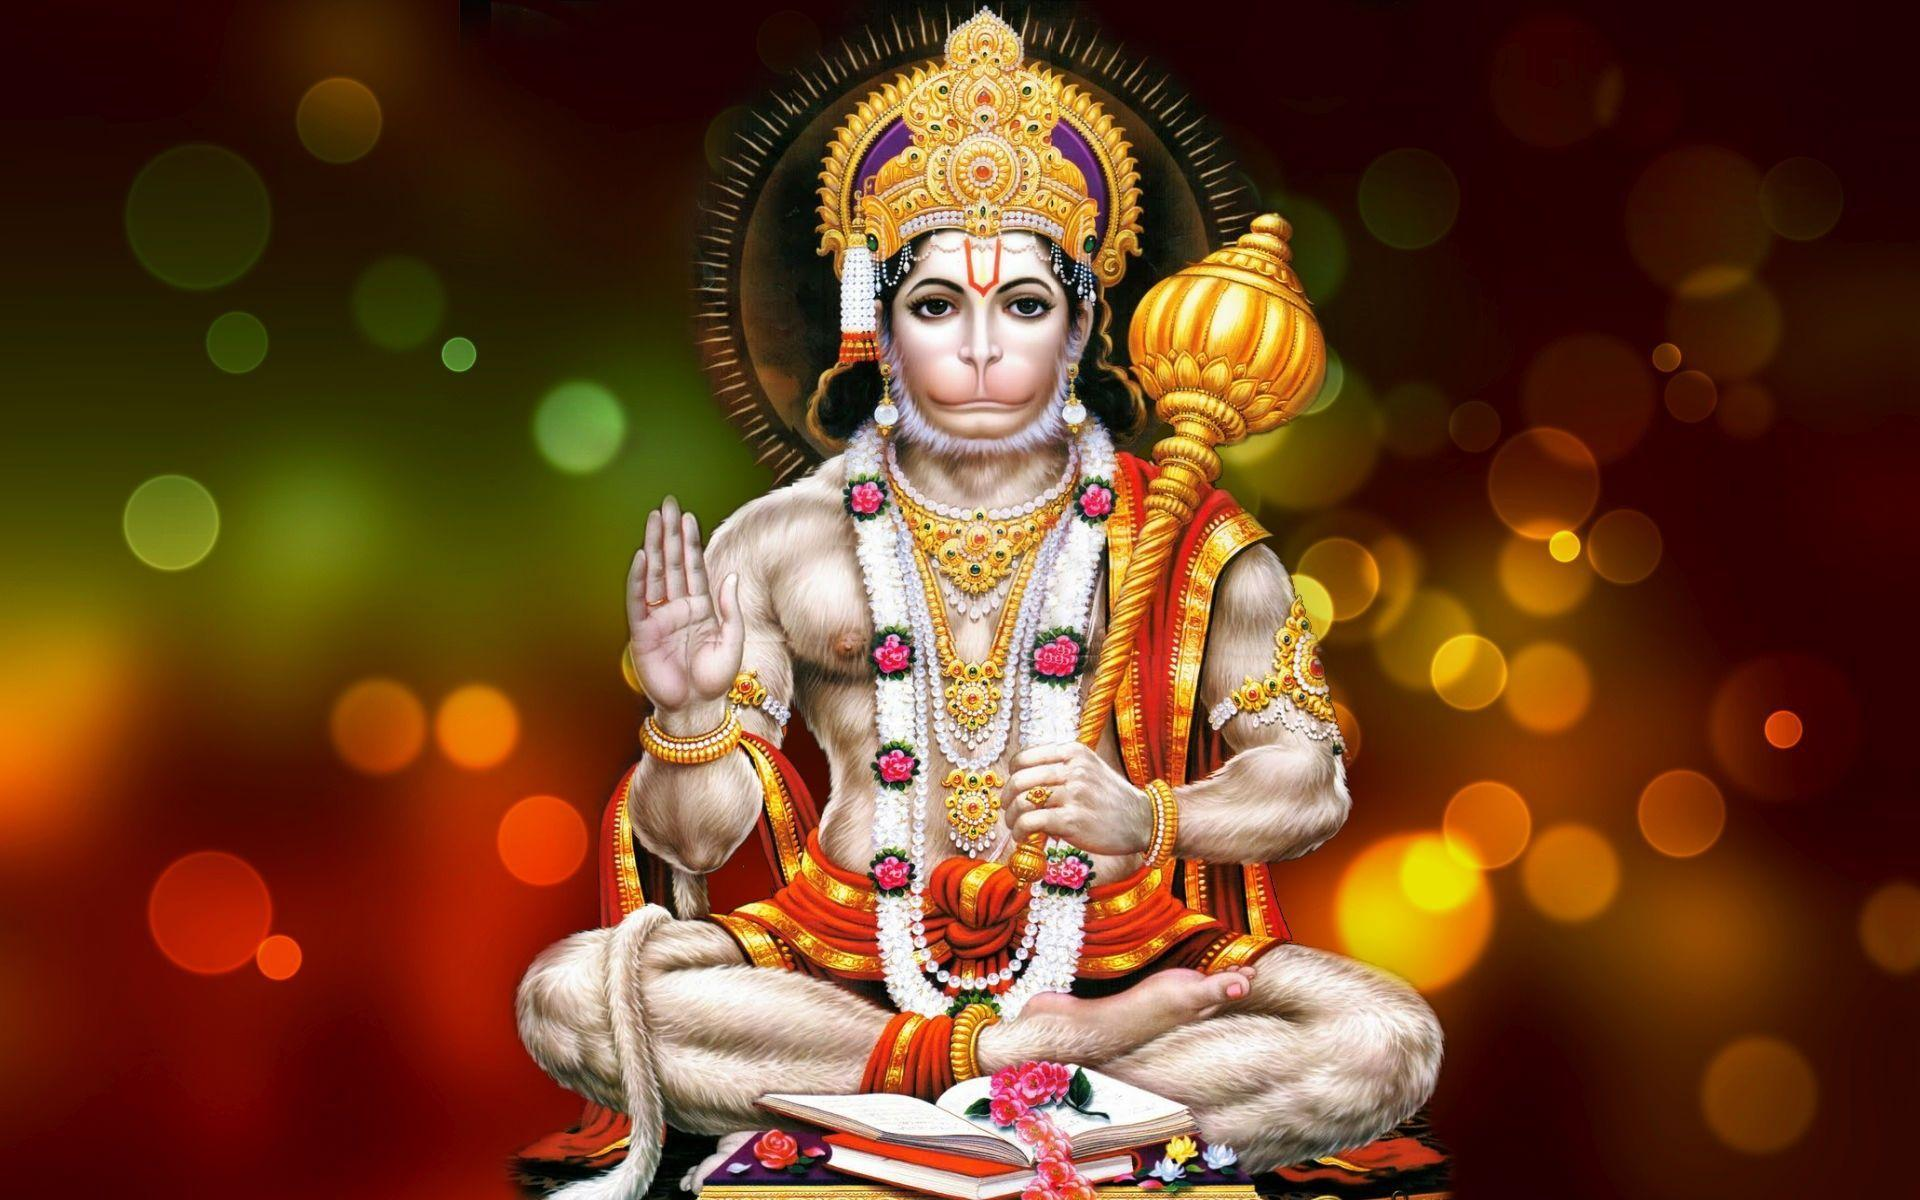 Free download desktop Hanuman Ji Wallpapers & image